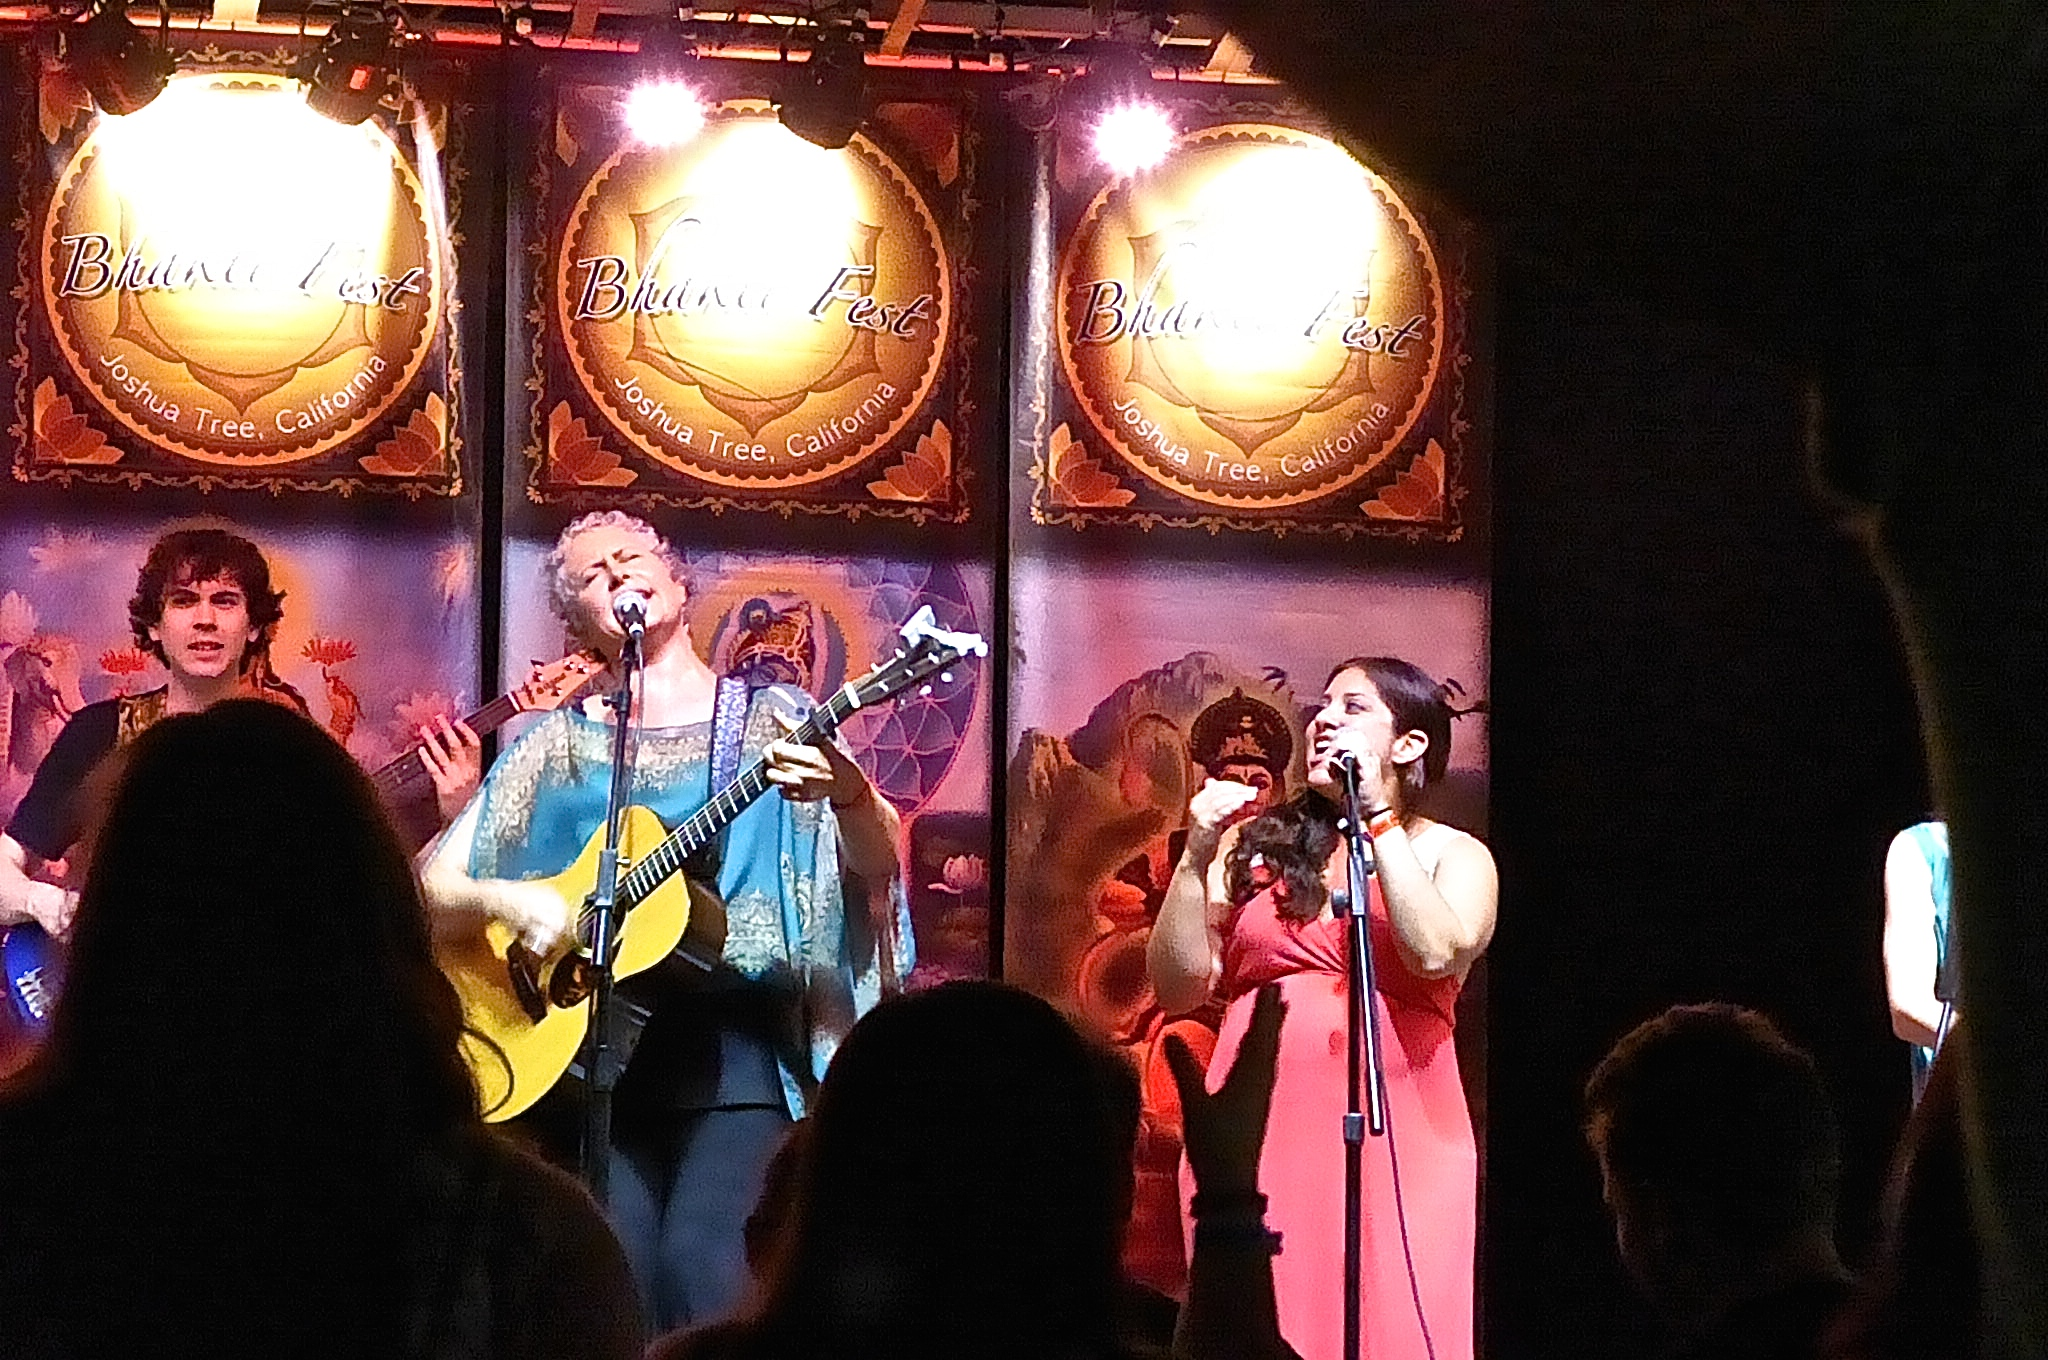 Brenda and band (pictured here Elden Kelley and Irene Solea) at Bhakti Fest Midwest 2014 - photo by Maie P. Jyoti